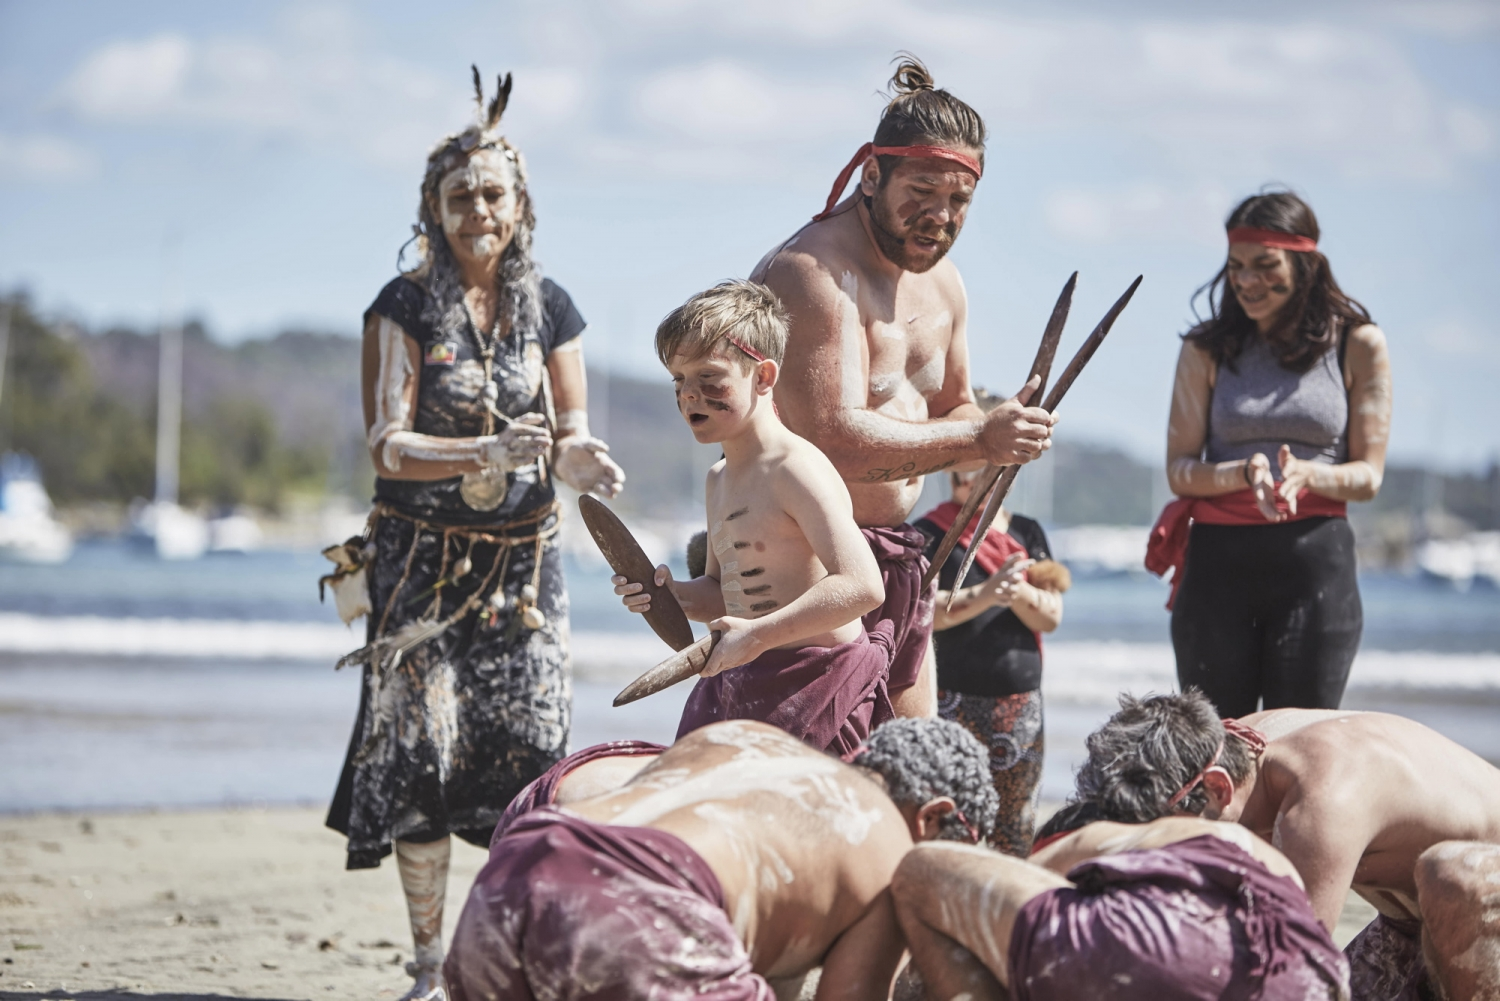 Indigenous dancers in traditional costume dancing on beach with harbour in background.